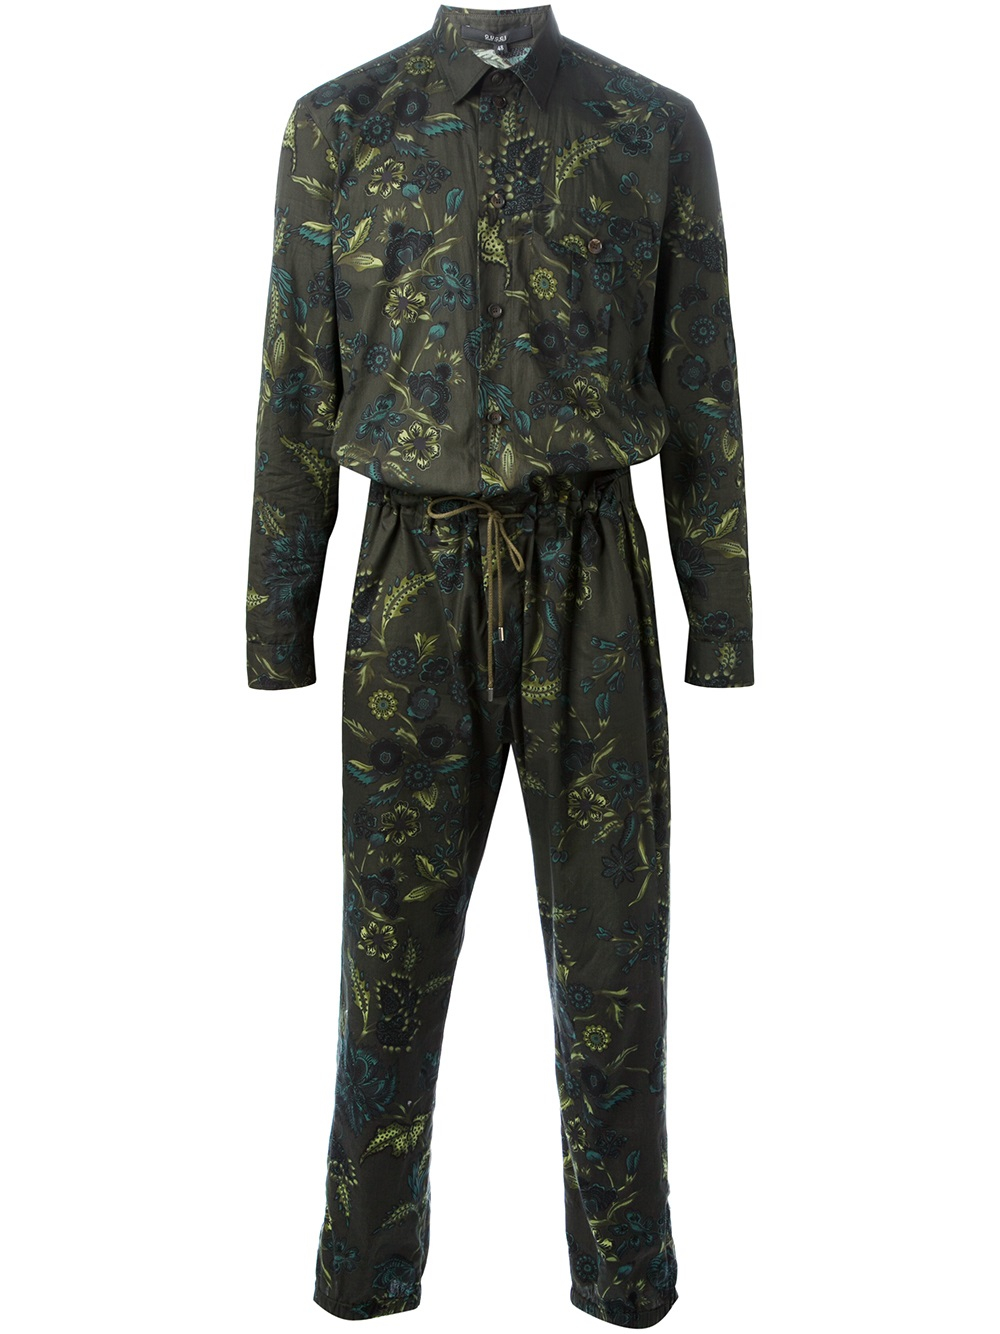 Lyst Gucci Plants Print Jumpsuit In Green For Men